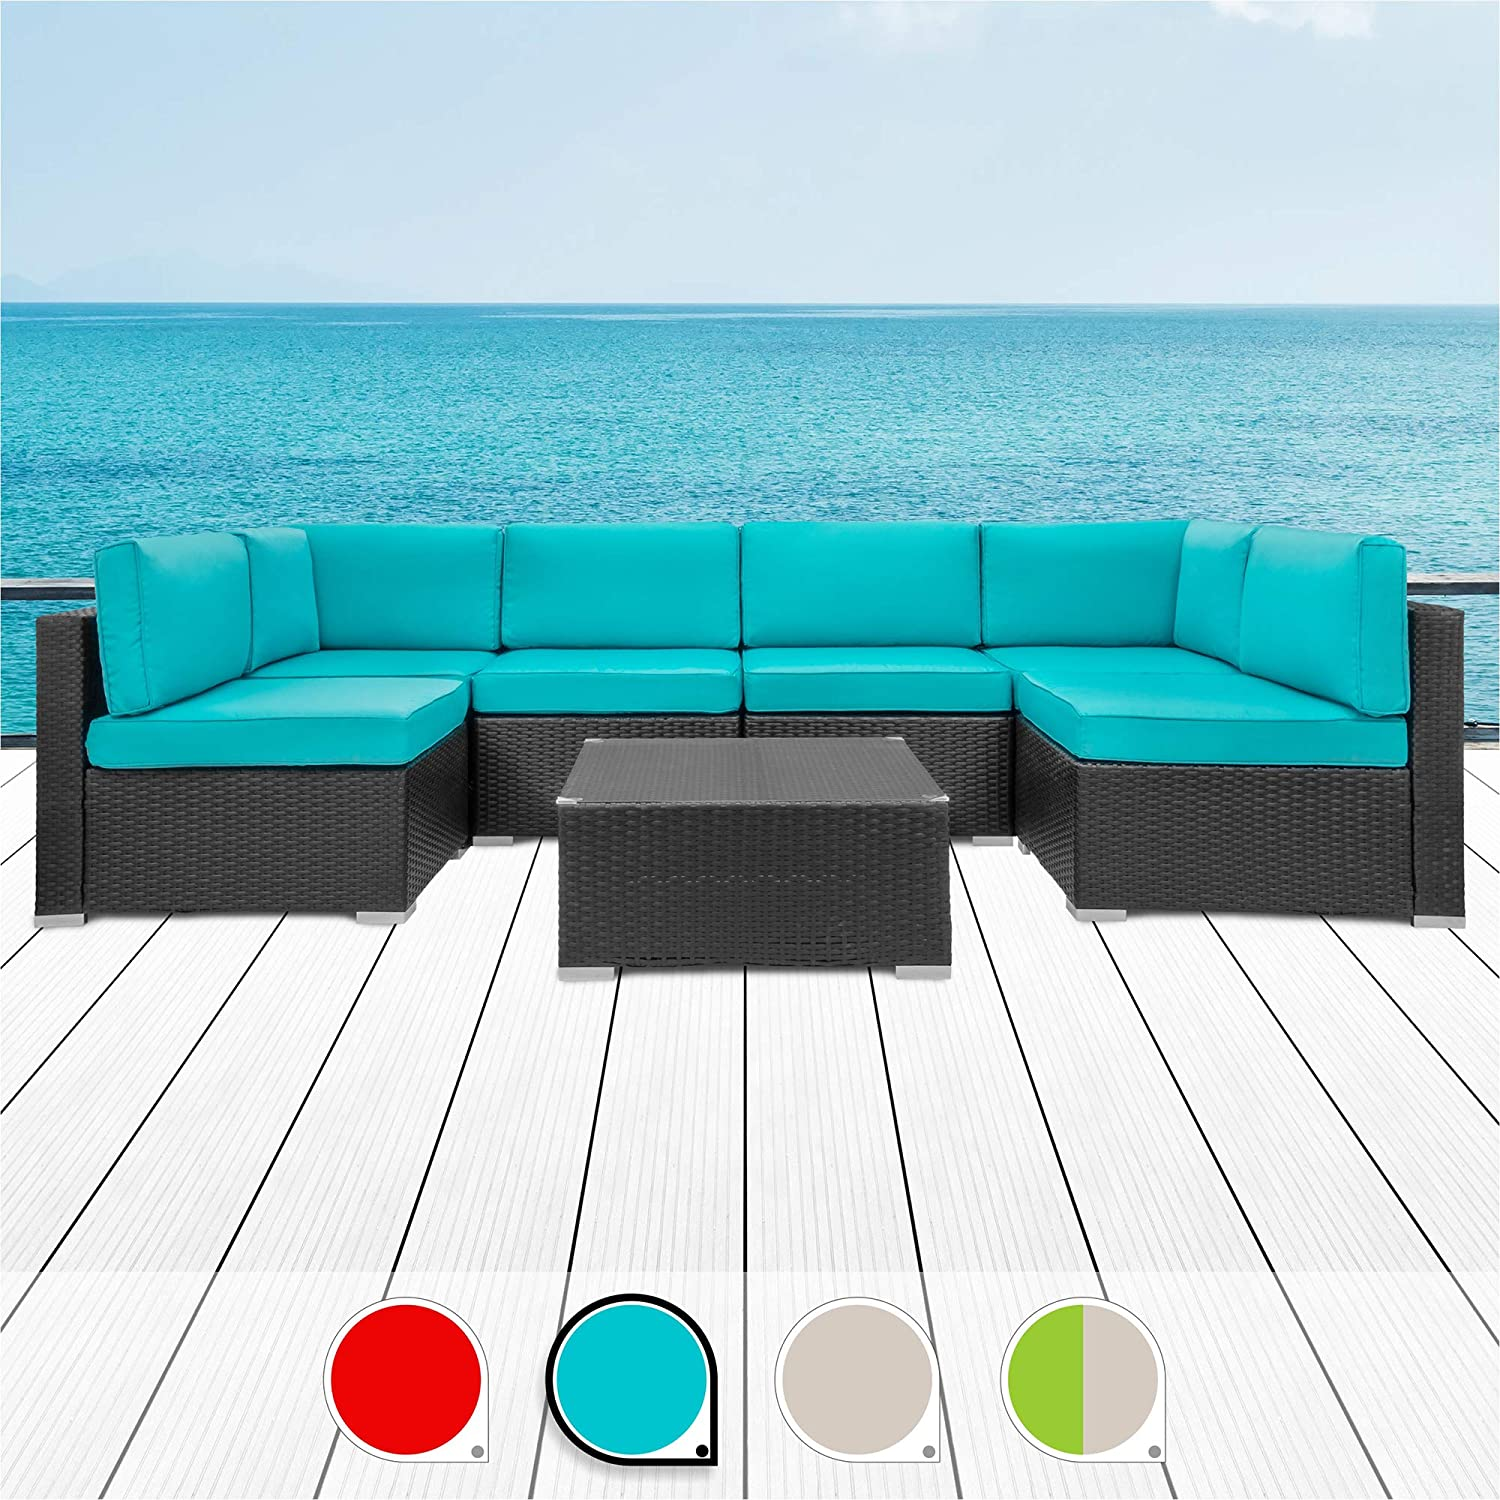 Walsunny 7pcs Patio Outdoor Furniture Sets,Low Back All-Weather Rattan Sectional Sofa with Tea Table&Washable Couch Cushions (Black Rattan (Blue)